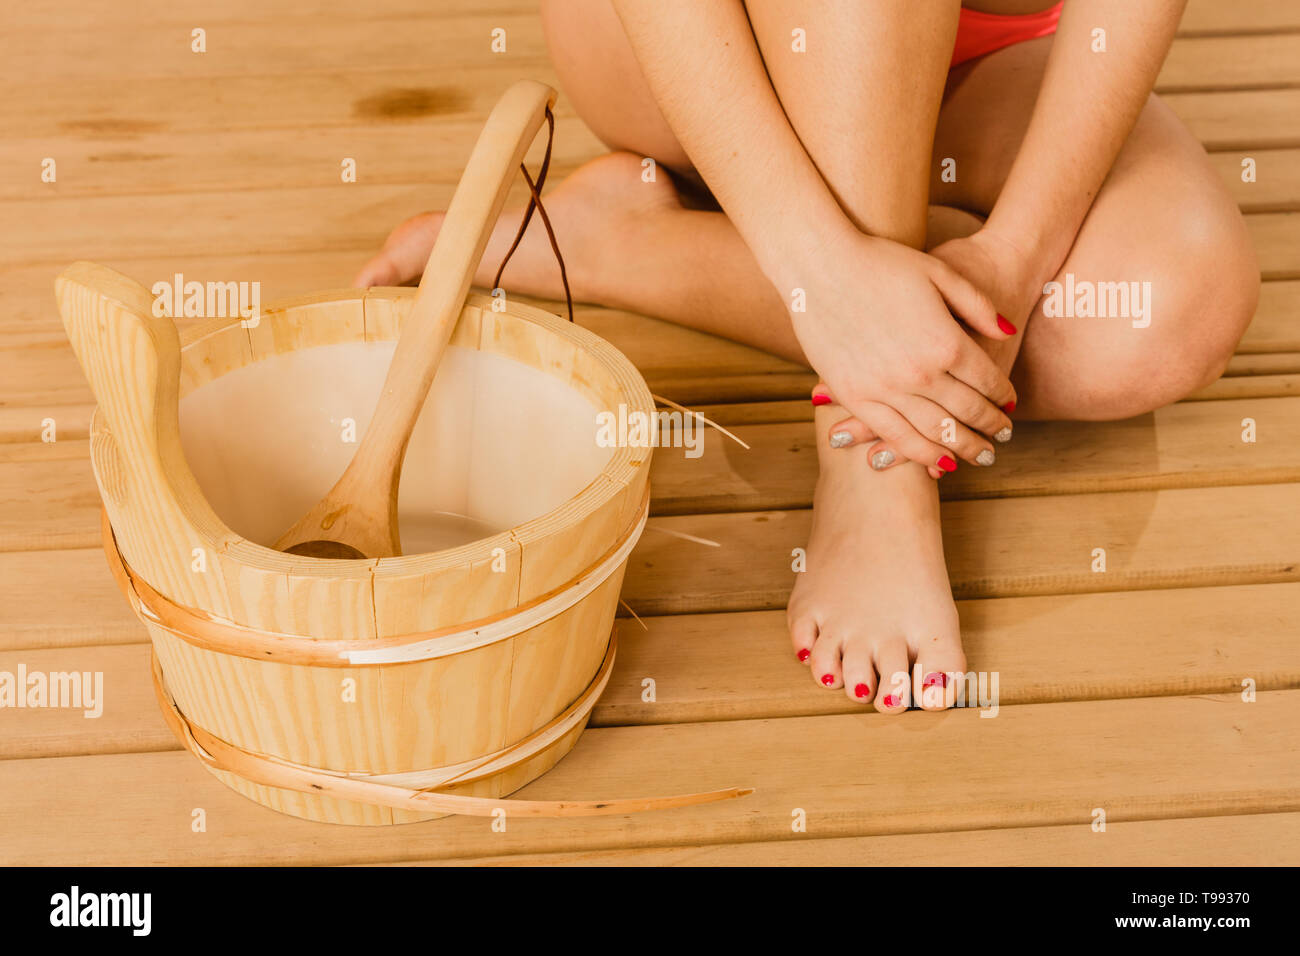 Closeup of human woman legs feet, hands with sauna bucket and ladle. Person relaxing resting in spa. - Stock Image